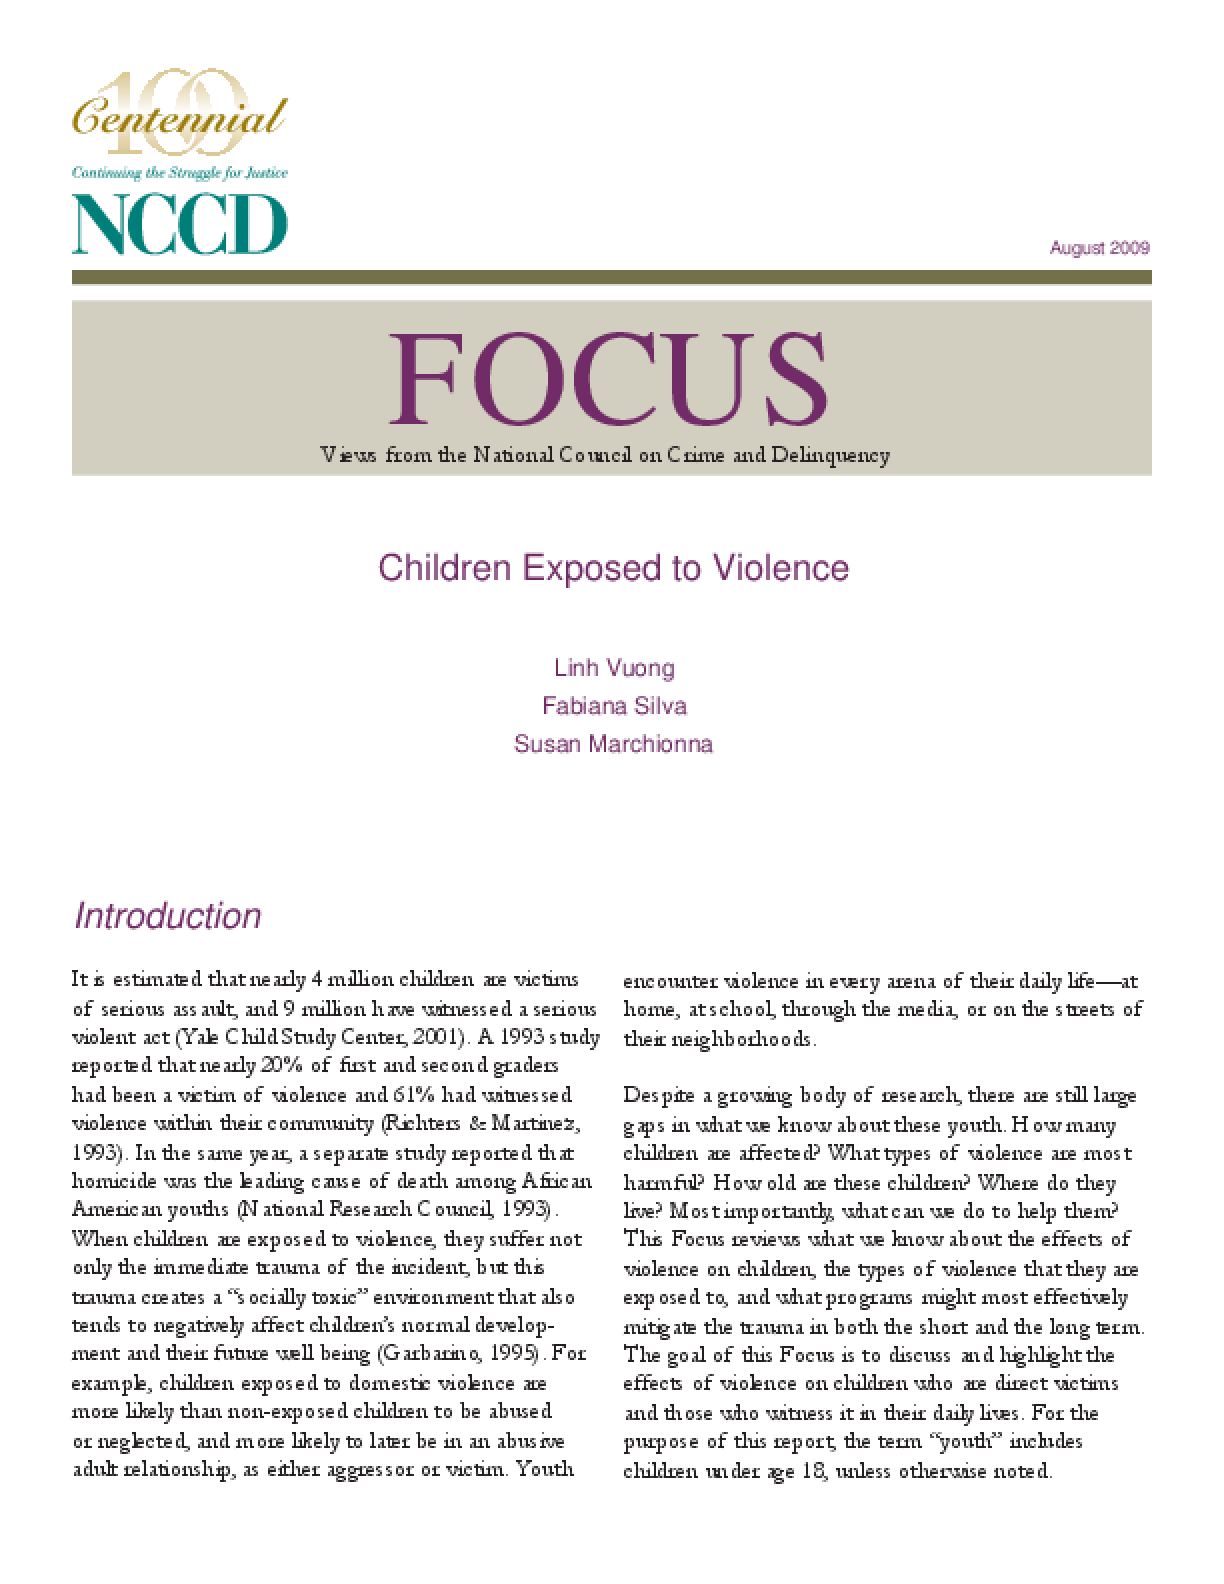 Children Exposed to Violence (Focus)